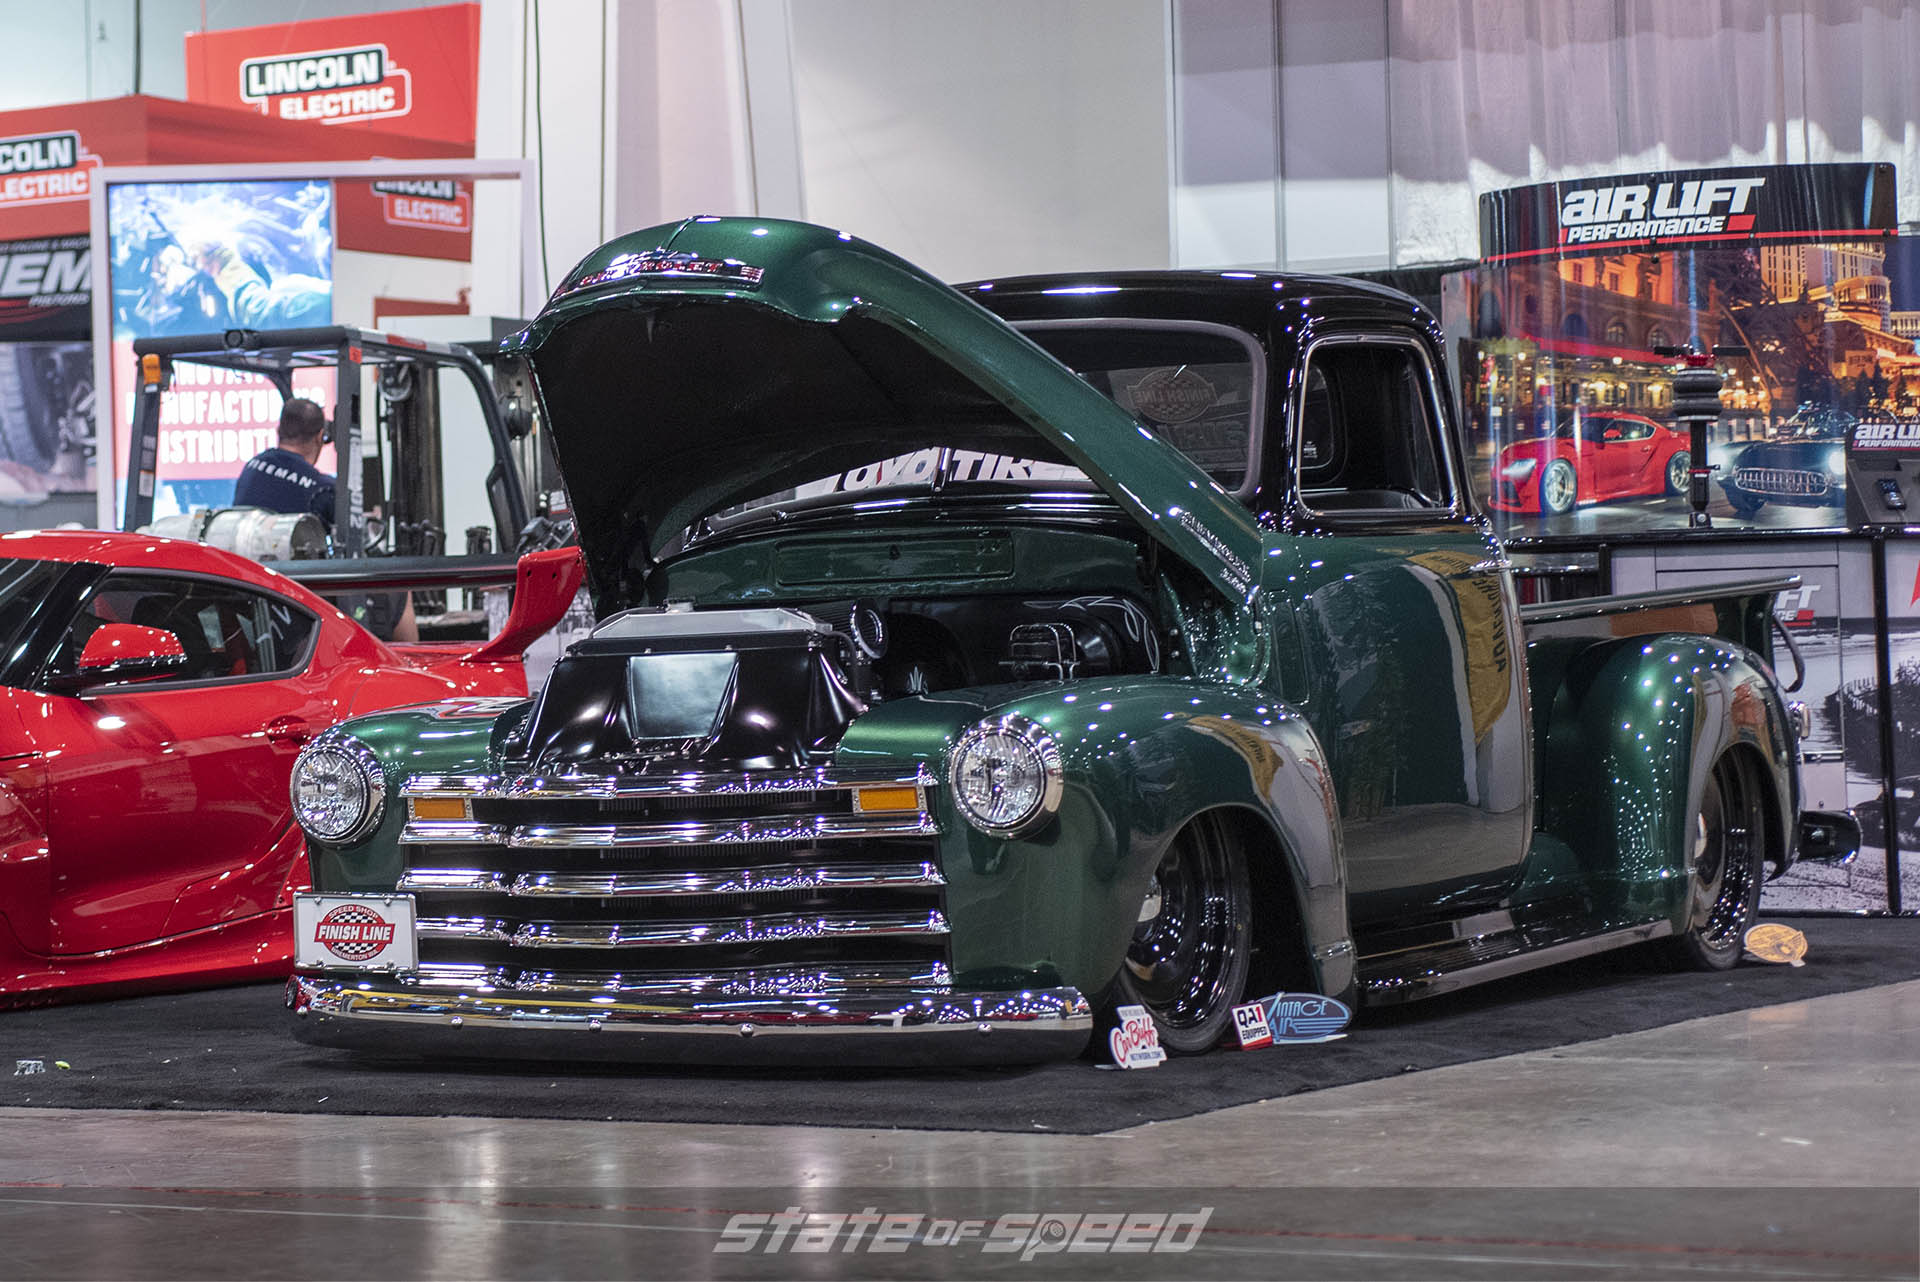 Air Lift Performance booth featuring a bagged classic Chevy pickup